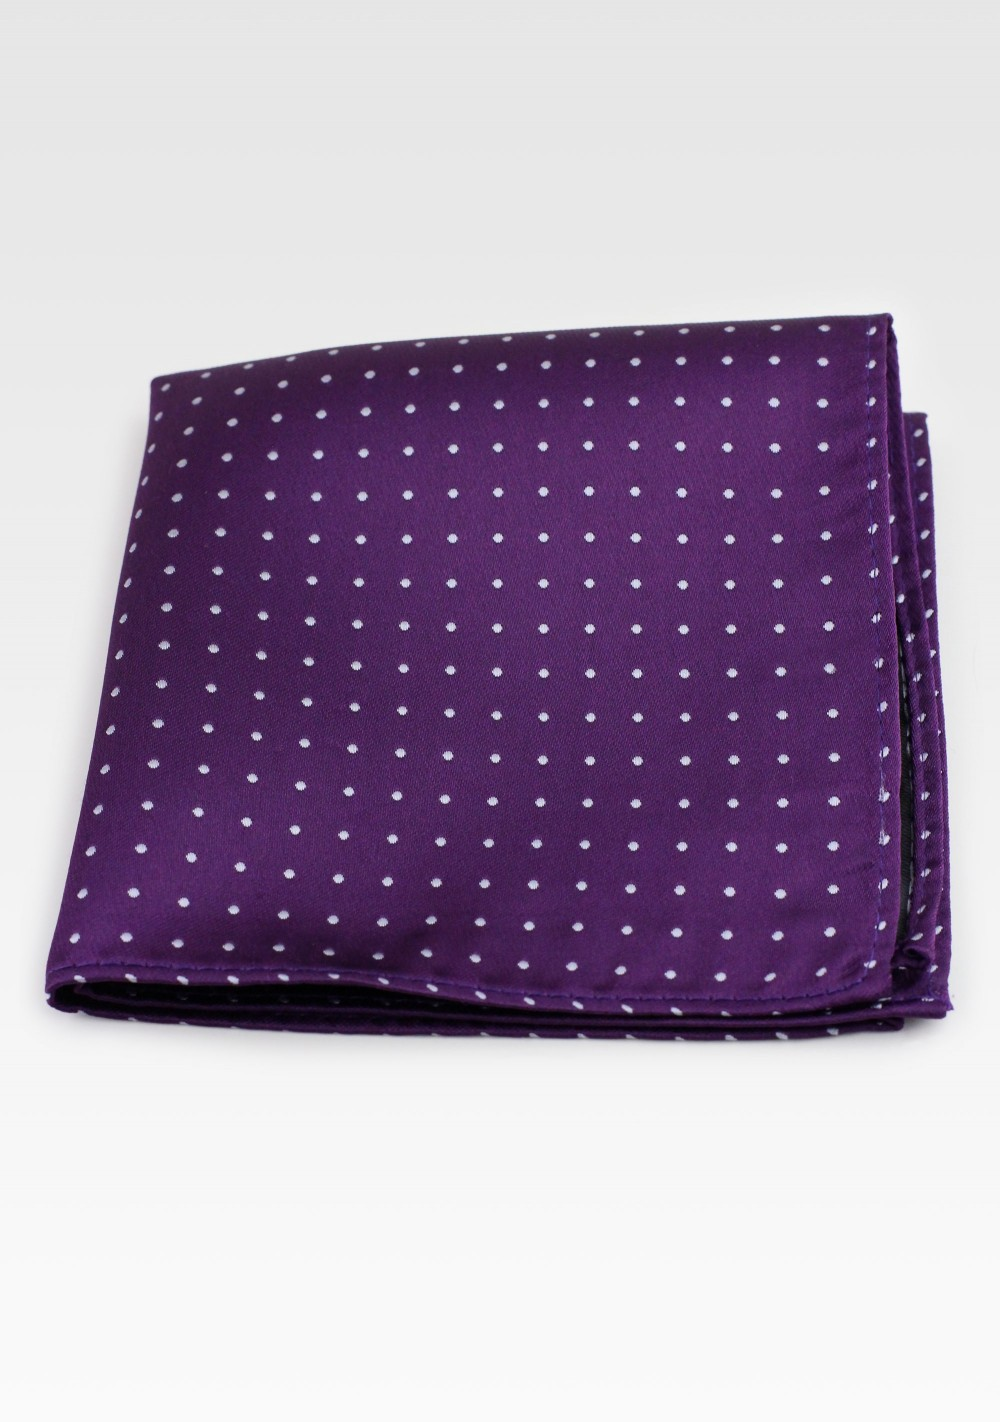 Grape Purple Polka Dot Pocket Square